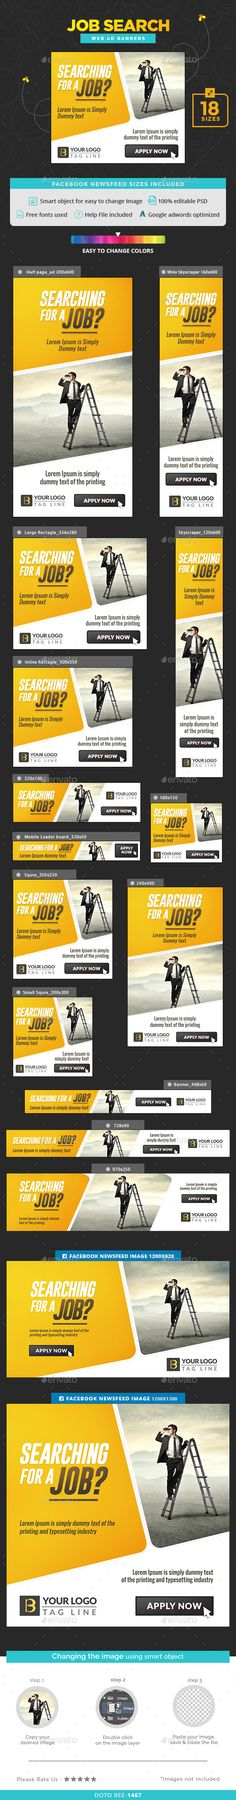 Hiring Banners — Photoshop PSD #deal #banners • Available here → https://graphicriver.net/item/hiring-banners/16568253?ref=pxcr